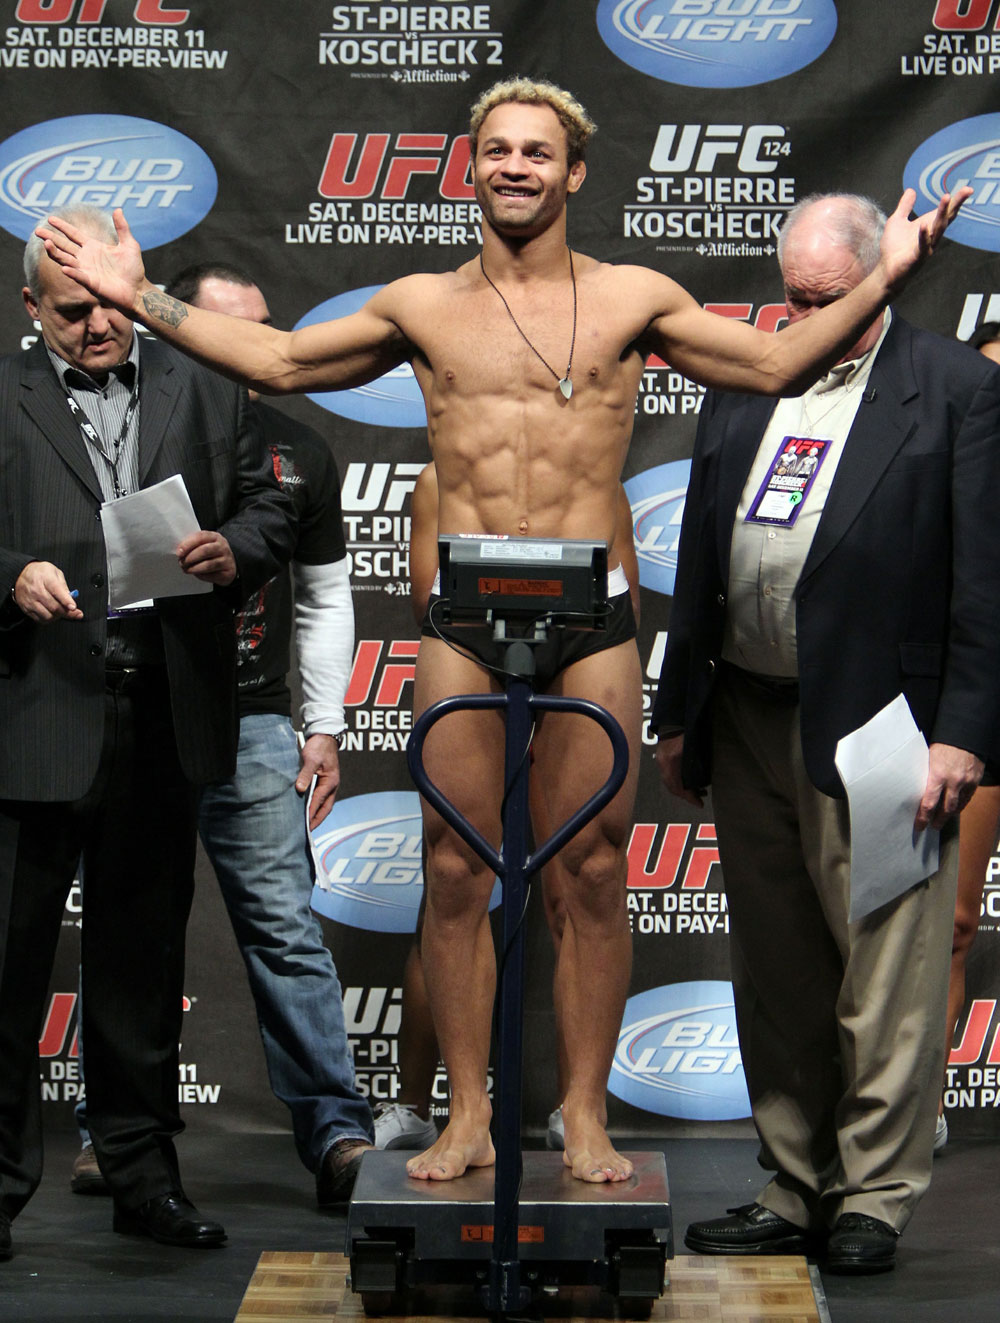 UFC 124 Weigh-in: Josh Koscheck weighs in at 169lbs.